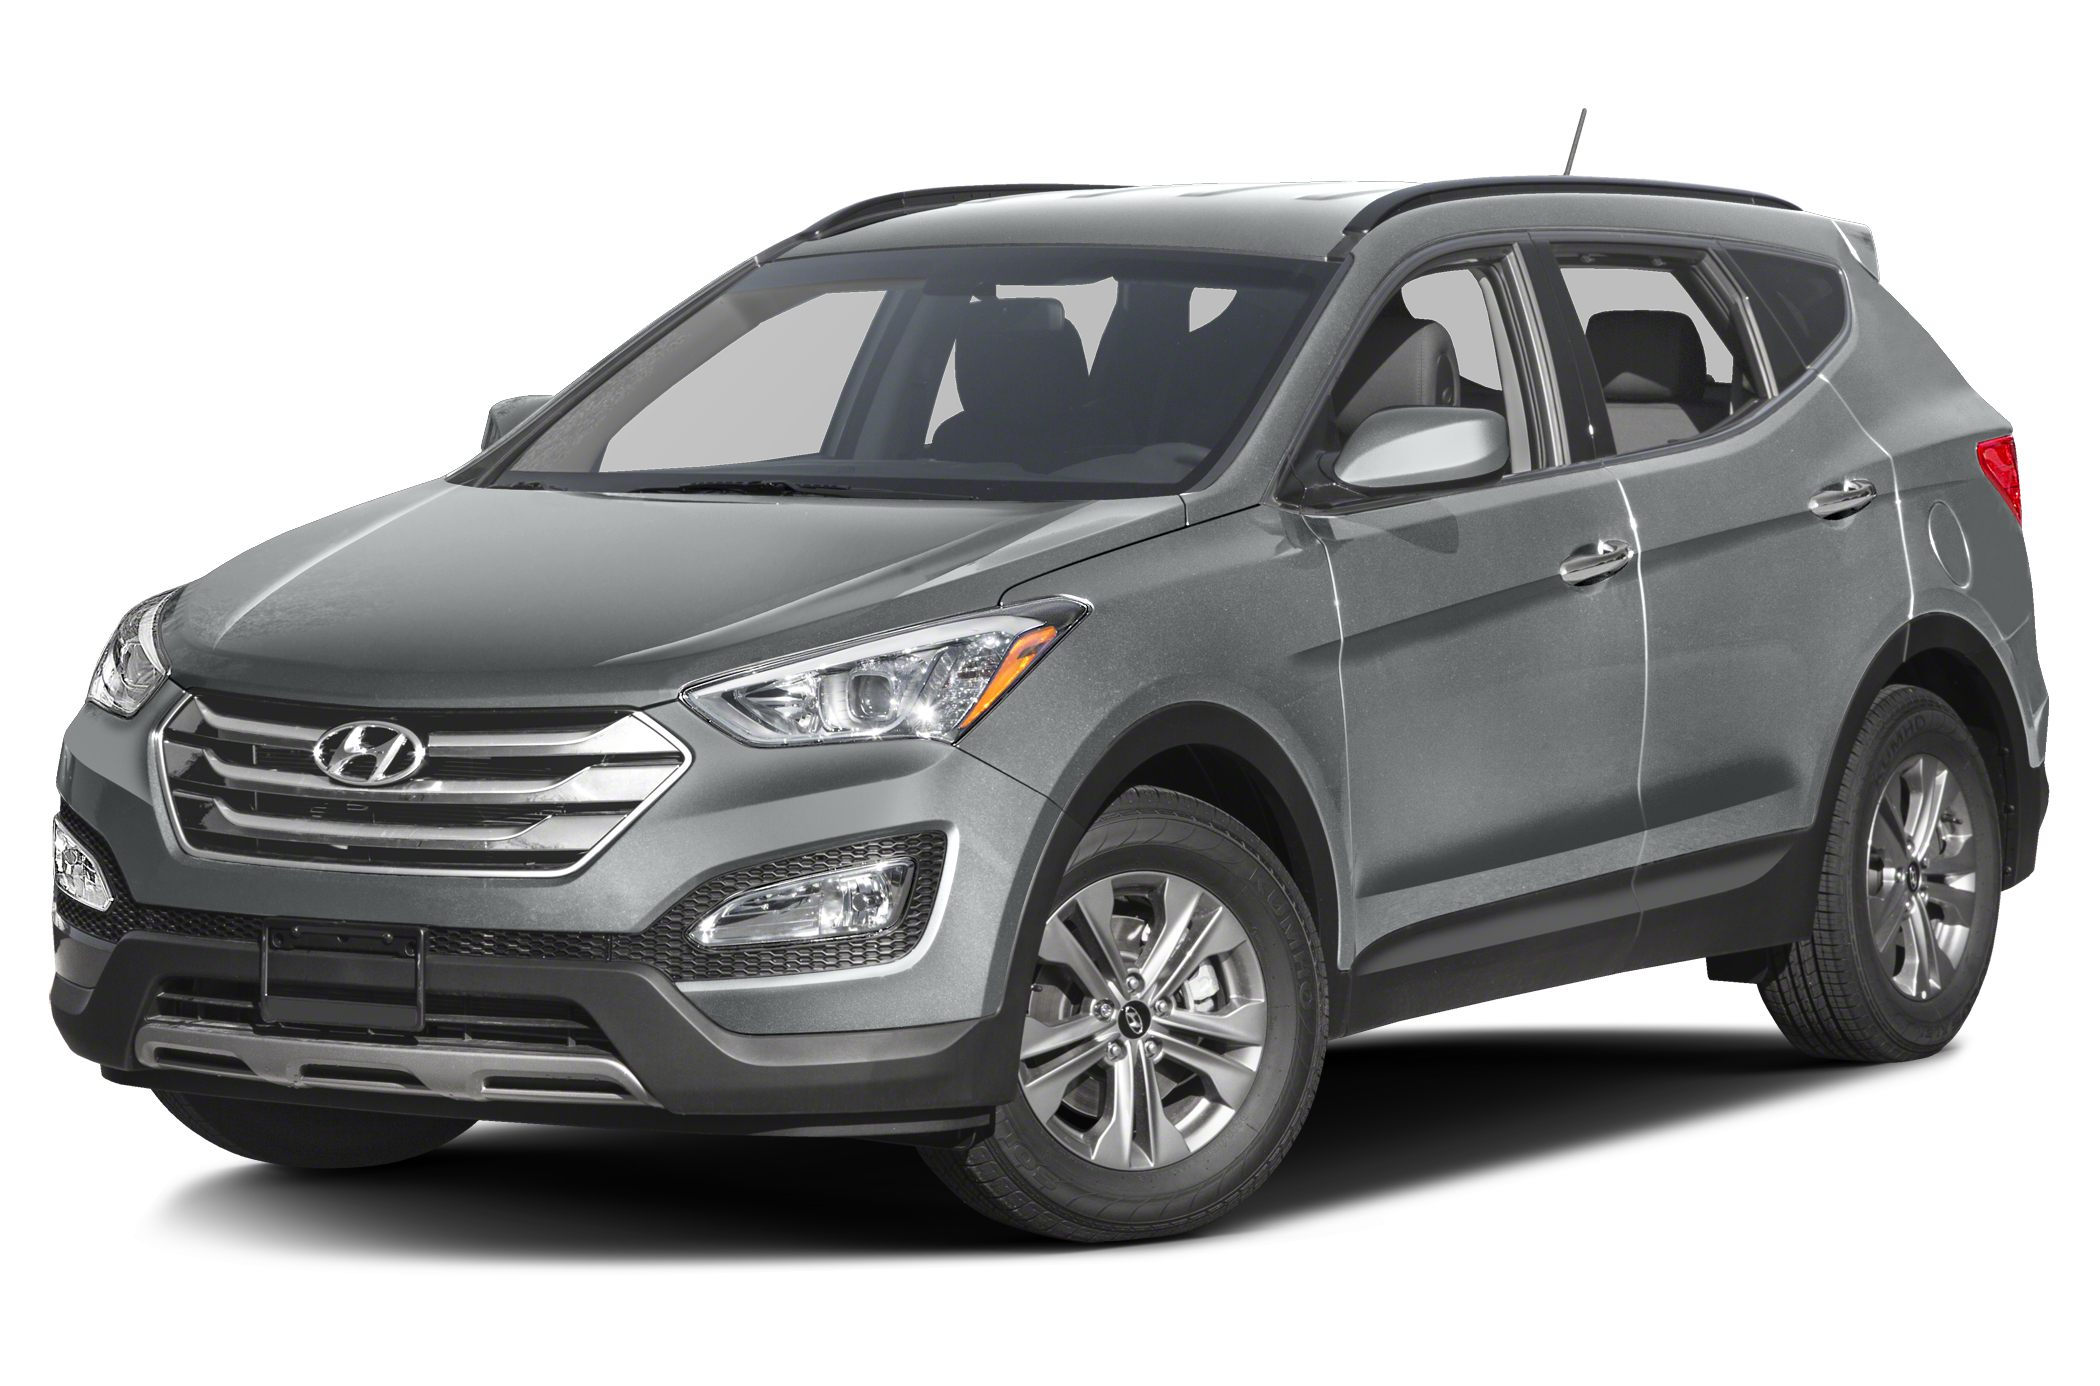 2016 Hyundai Santa Fe Sport Styles & Features Highlights